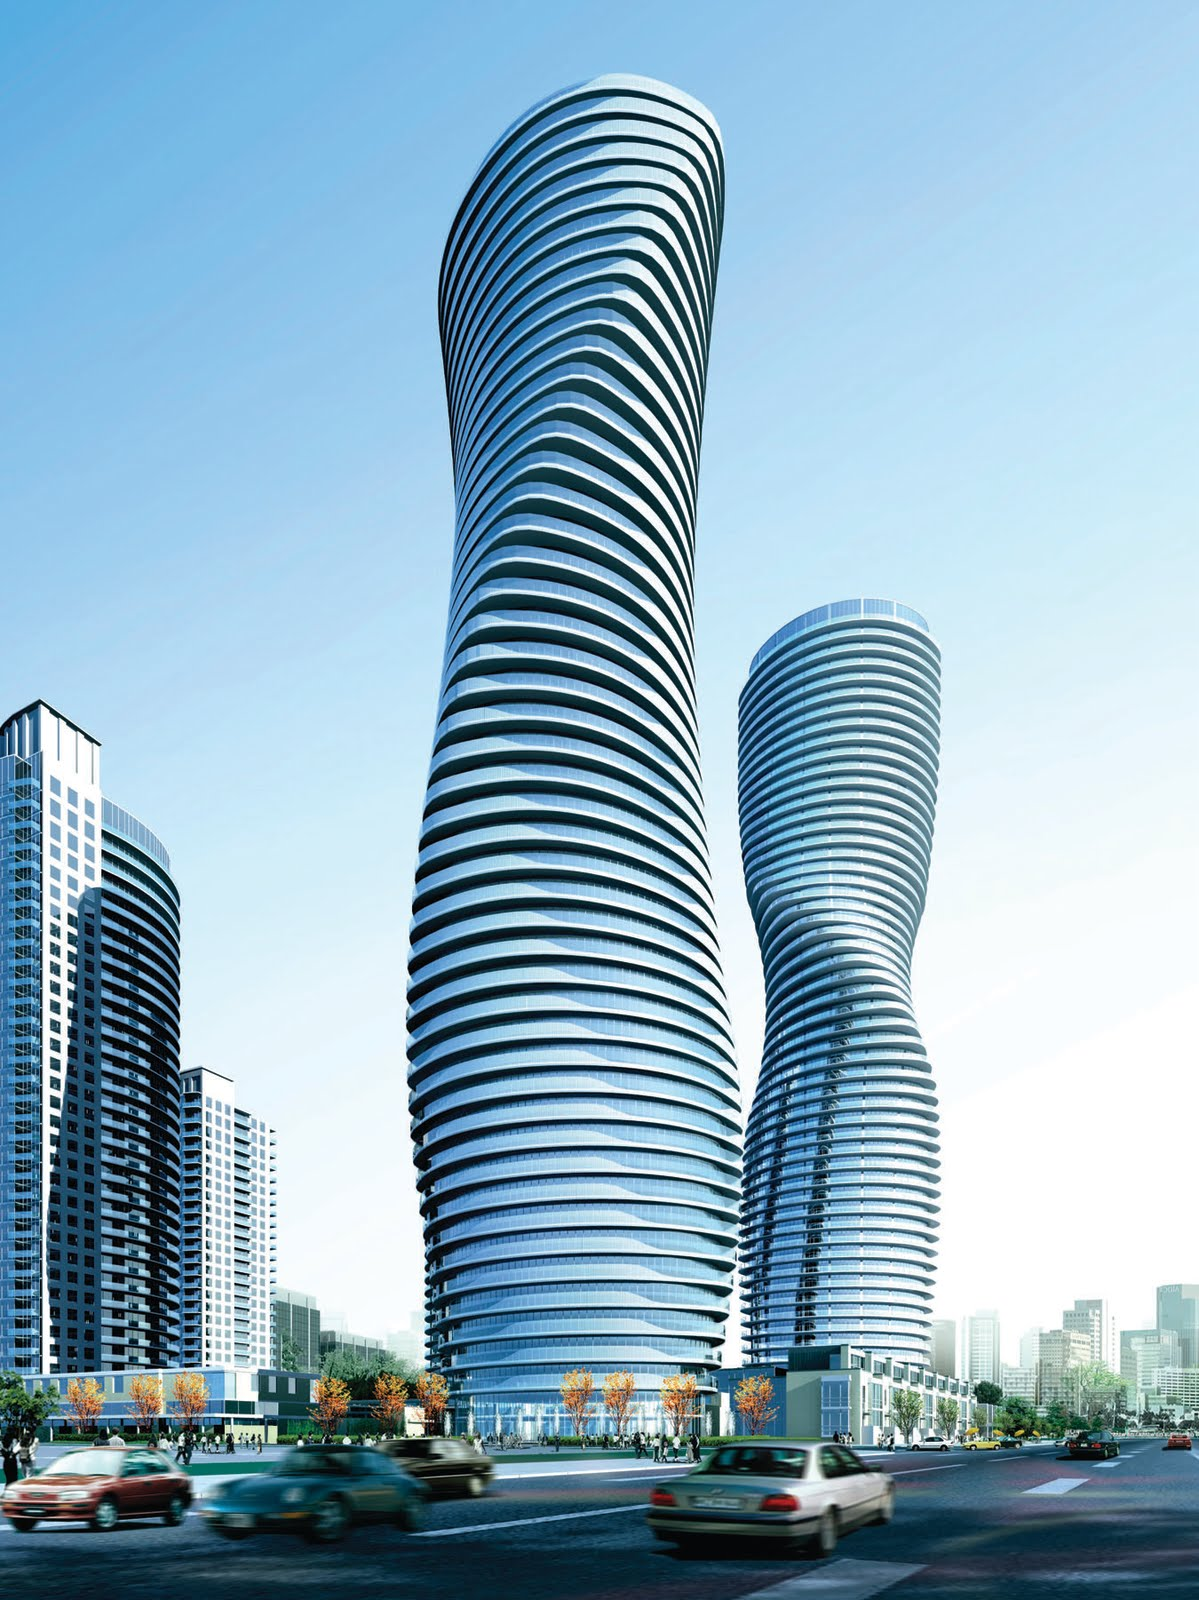 Factoids about the marilyn monroe building and absolute 5 for Absolute towers